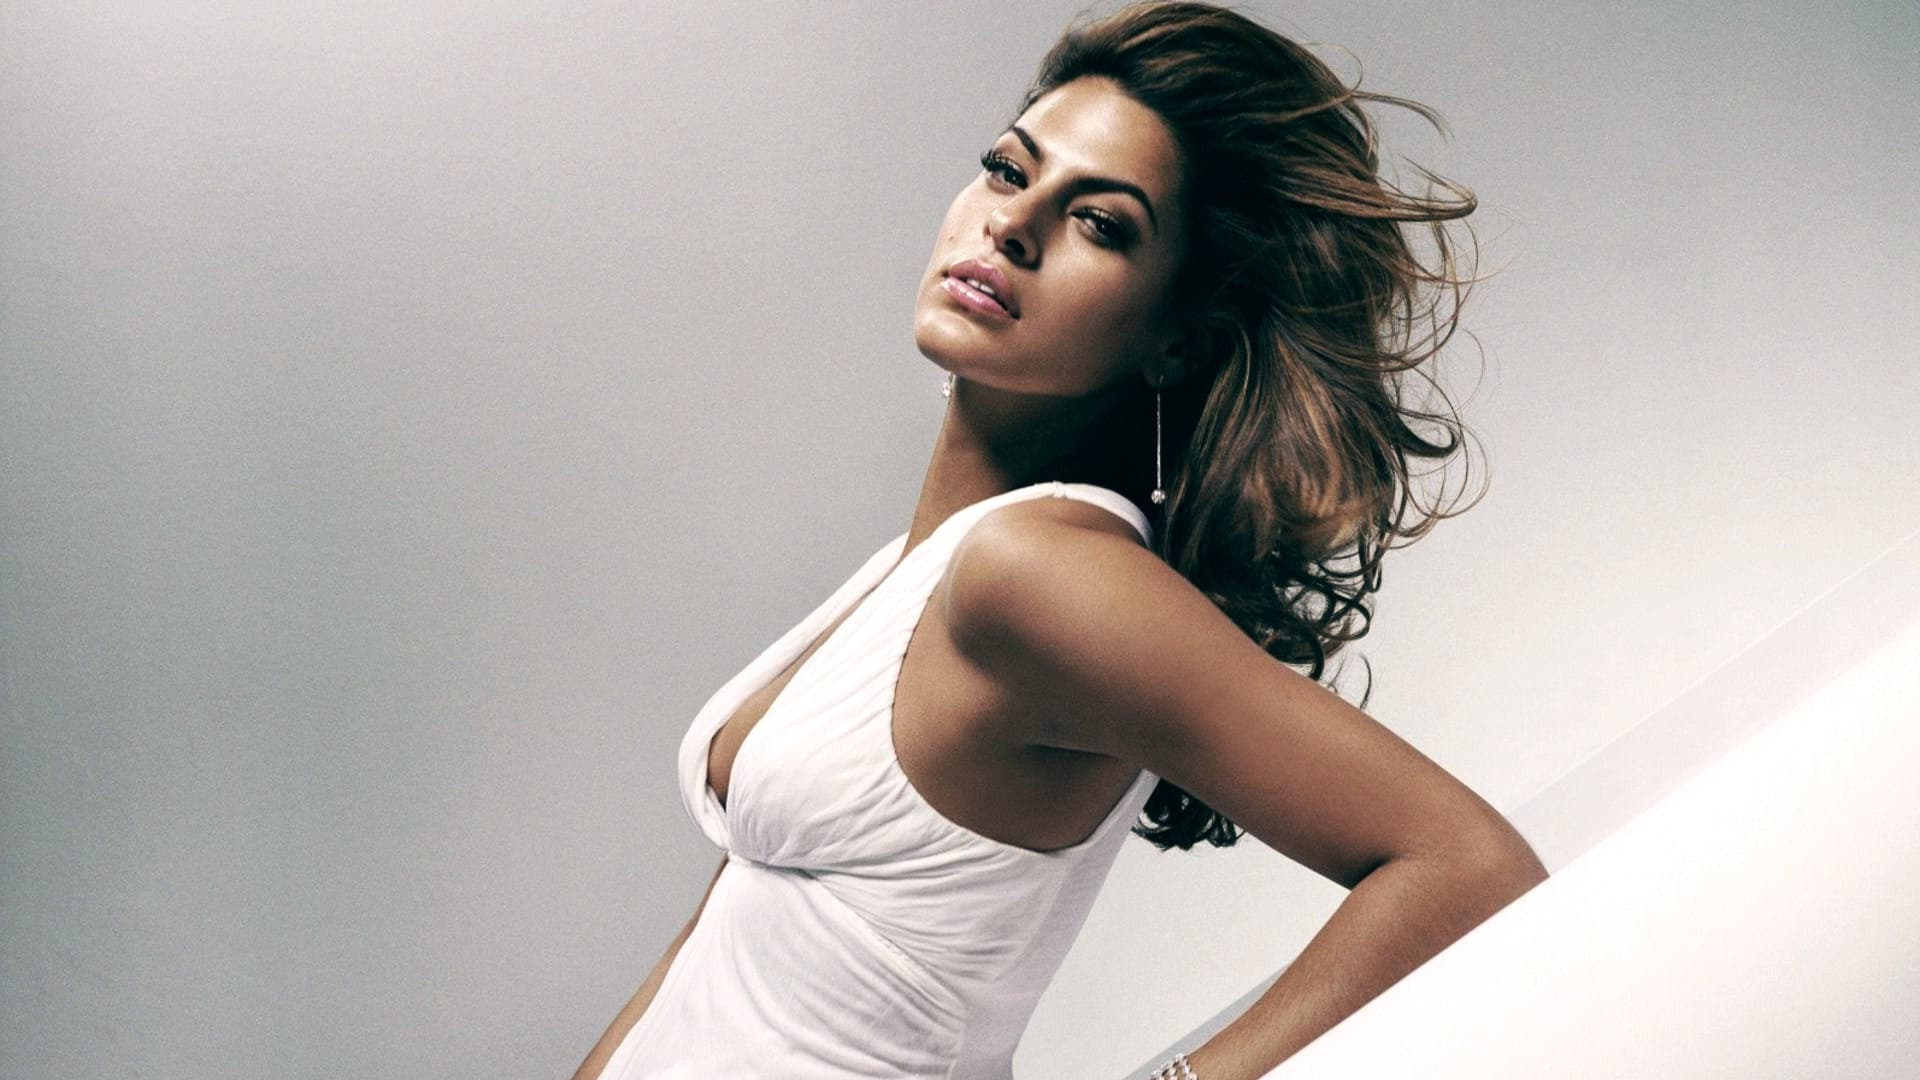 Ultra Hd Wallpapers Cars Eva Mendes Wallpapers Hd High Quality Resolution Download